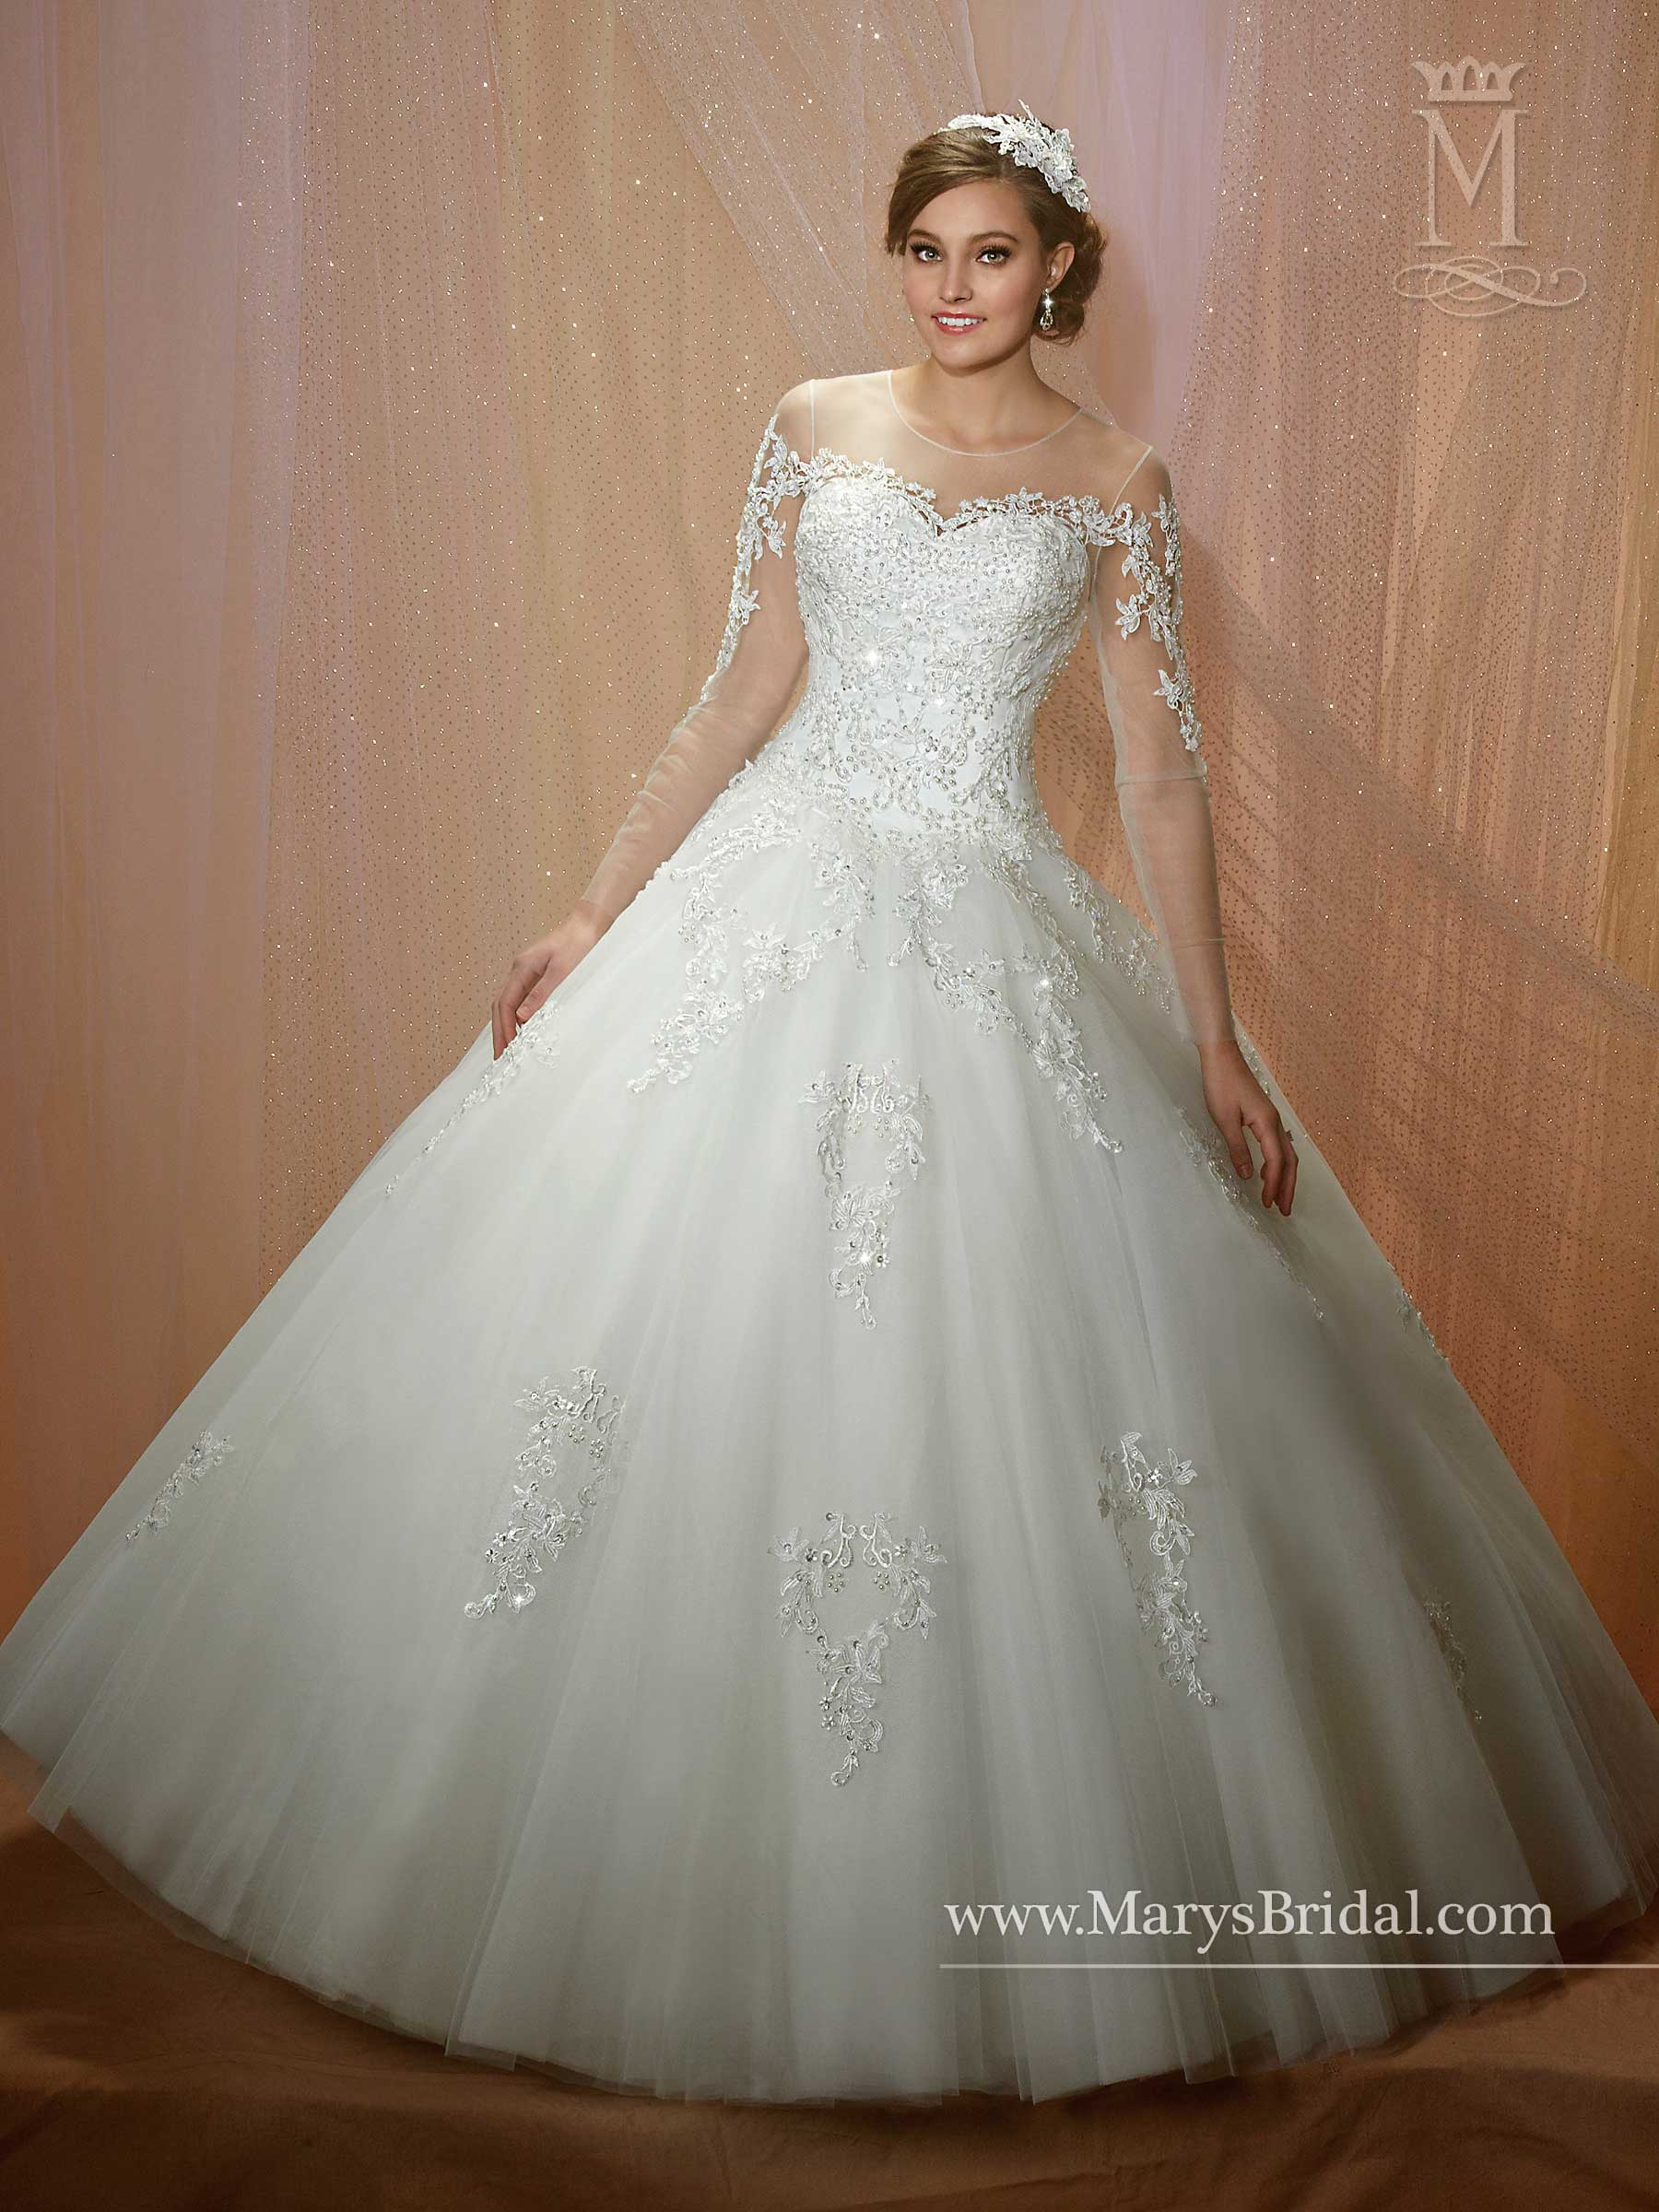 Couture Damour Bridal Dresses Style 6462 in Ivory or